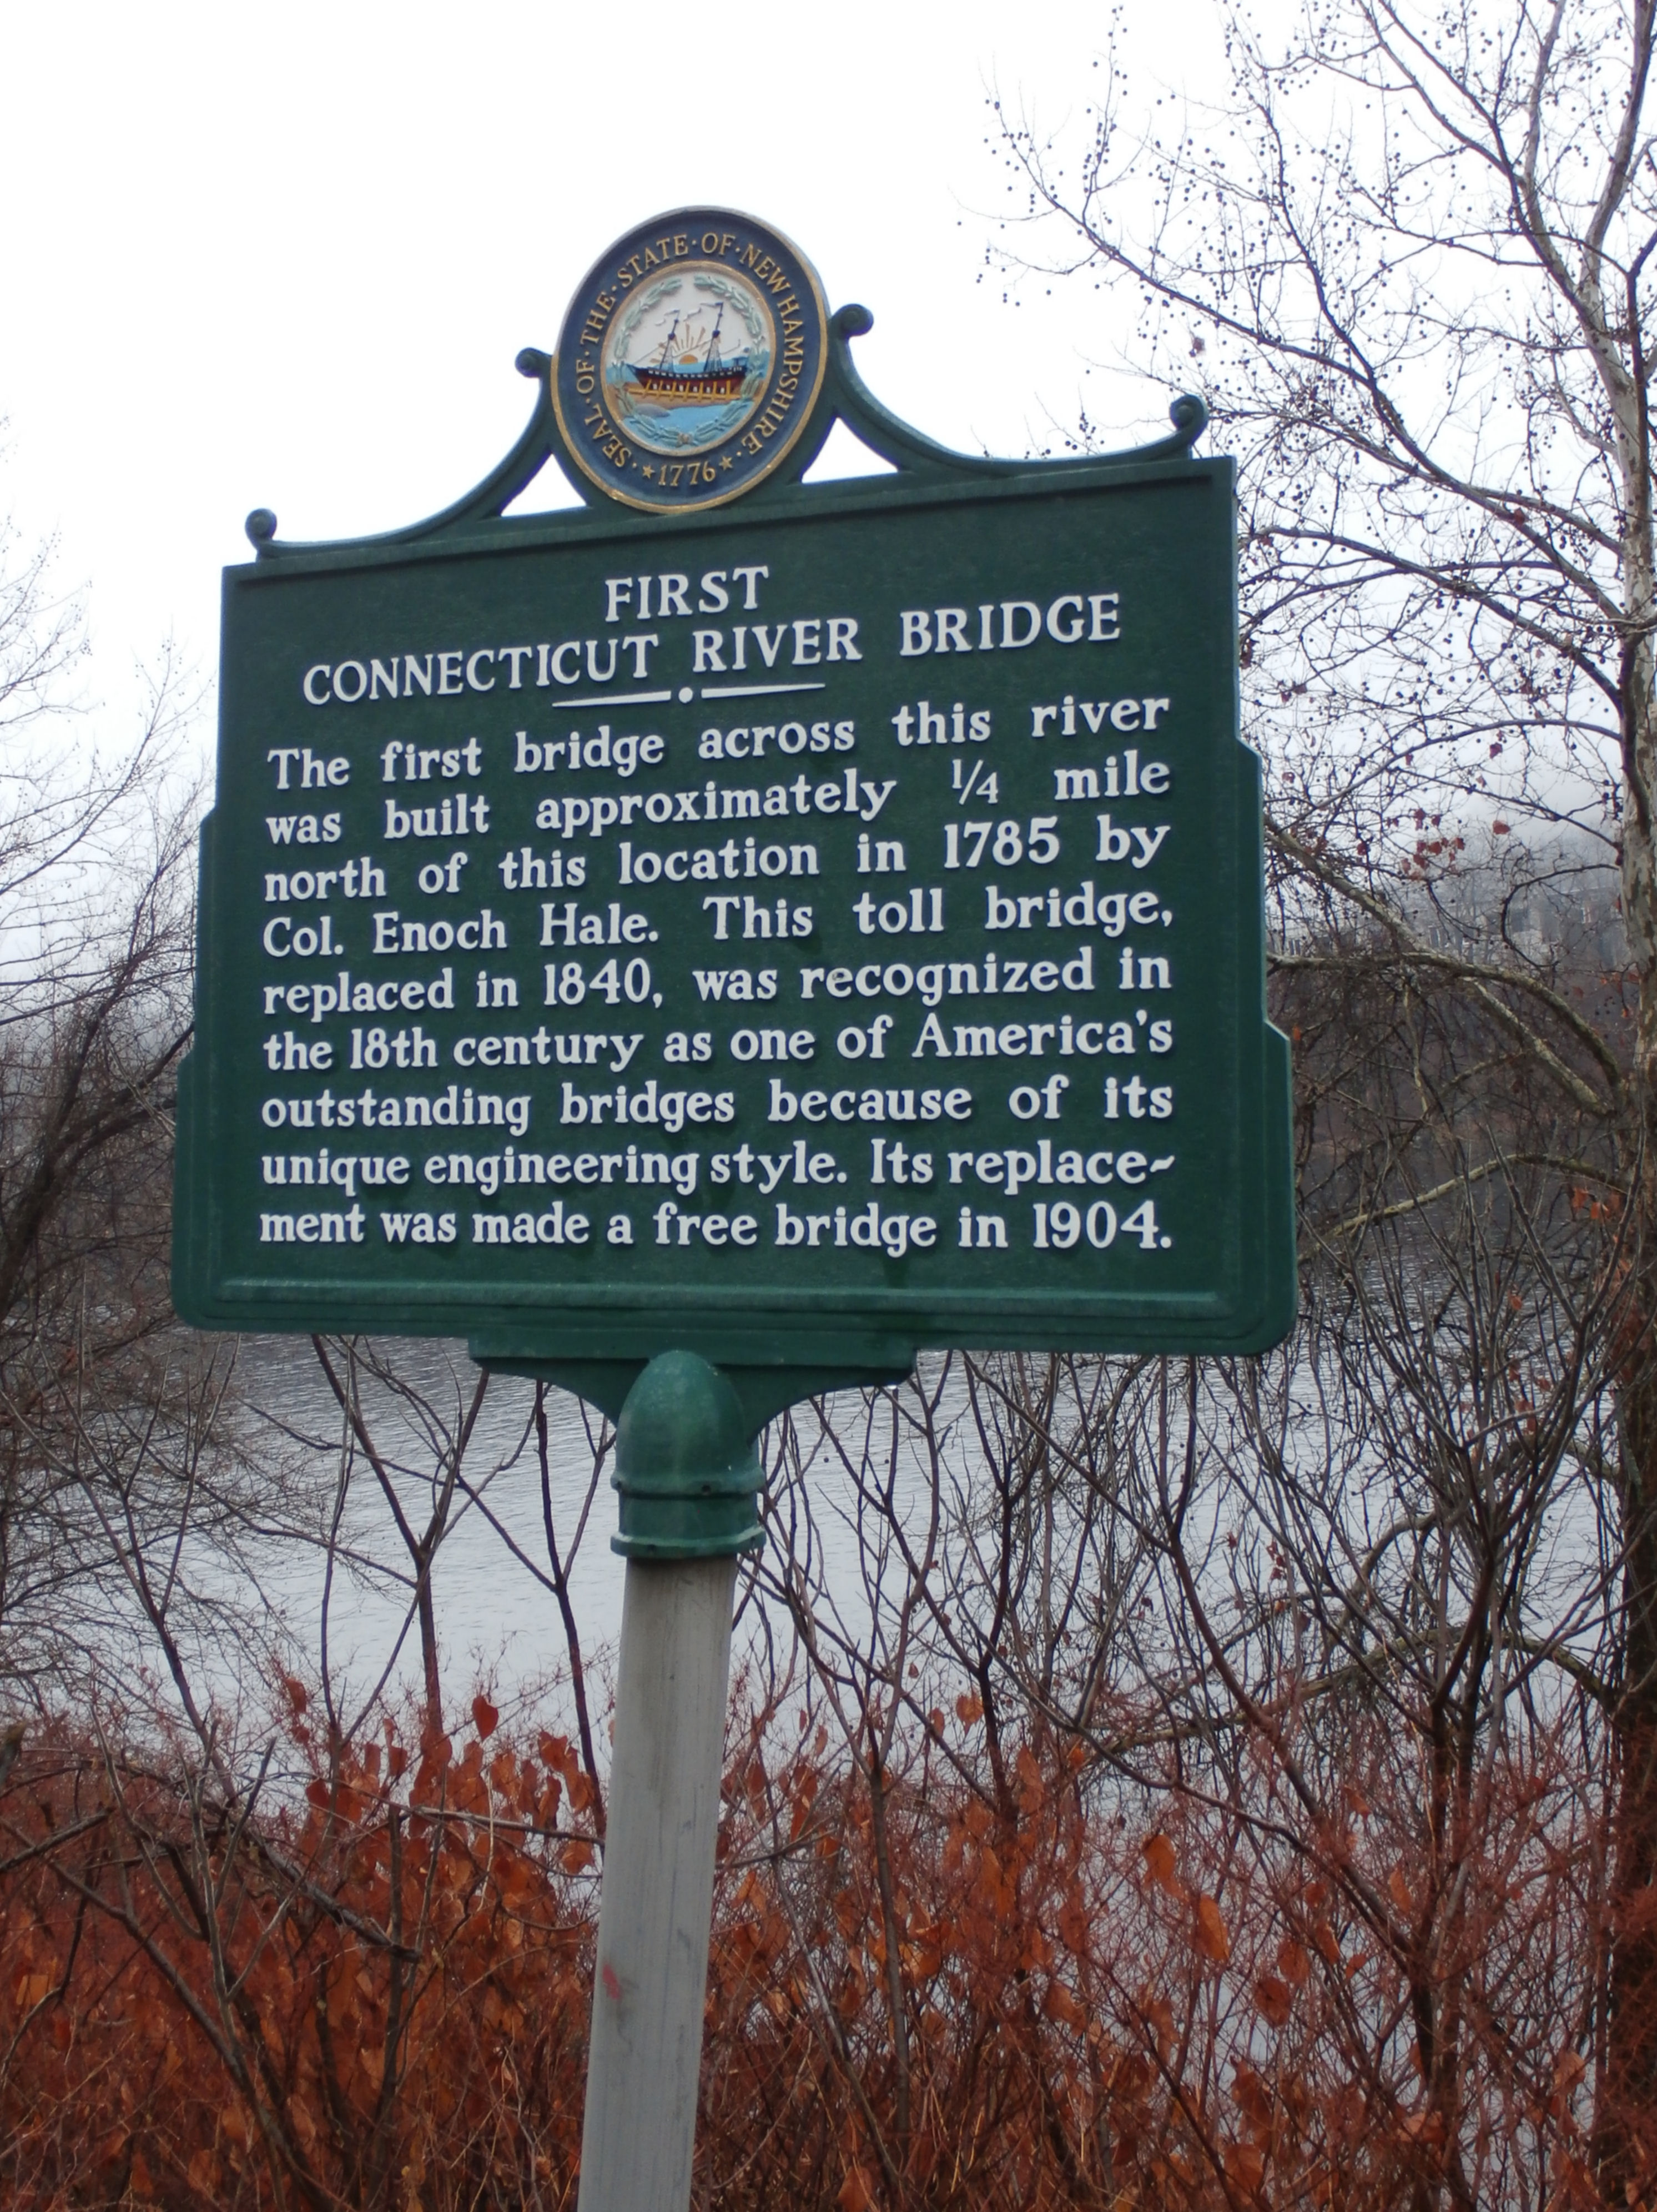 First Connecticut River Bridge Historical Marker